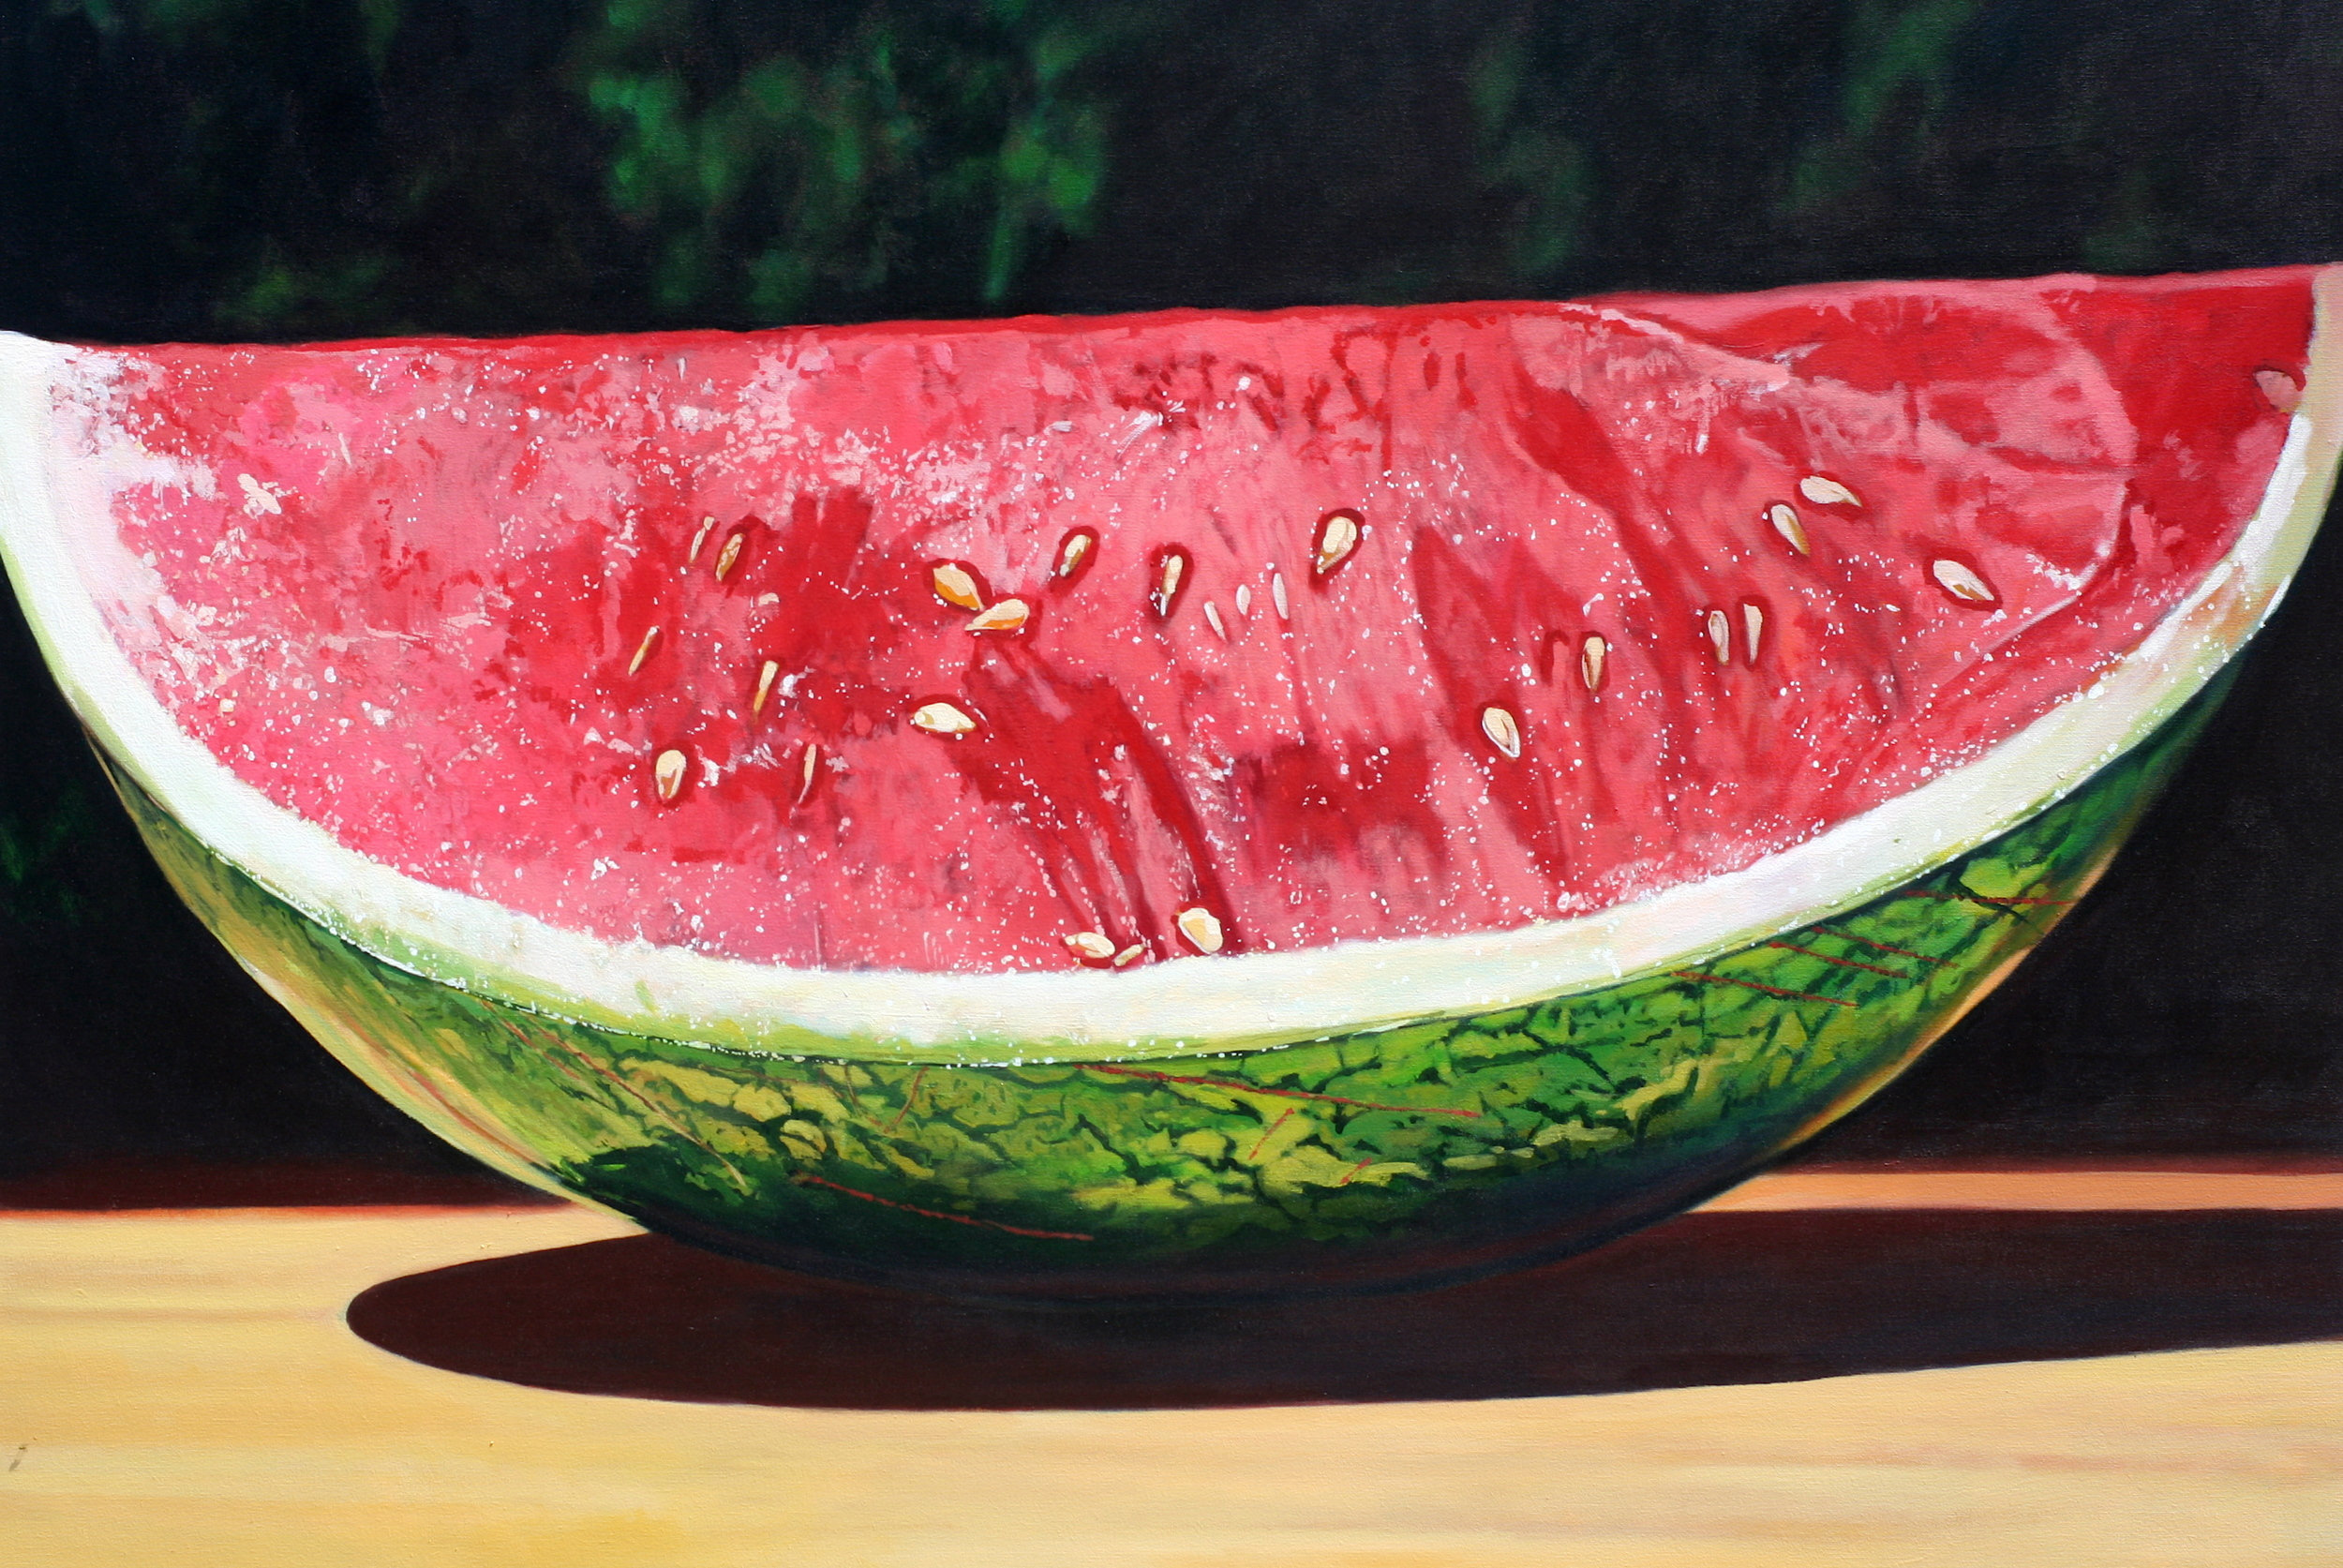 Watermelon Anyone?